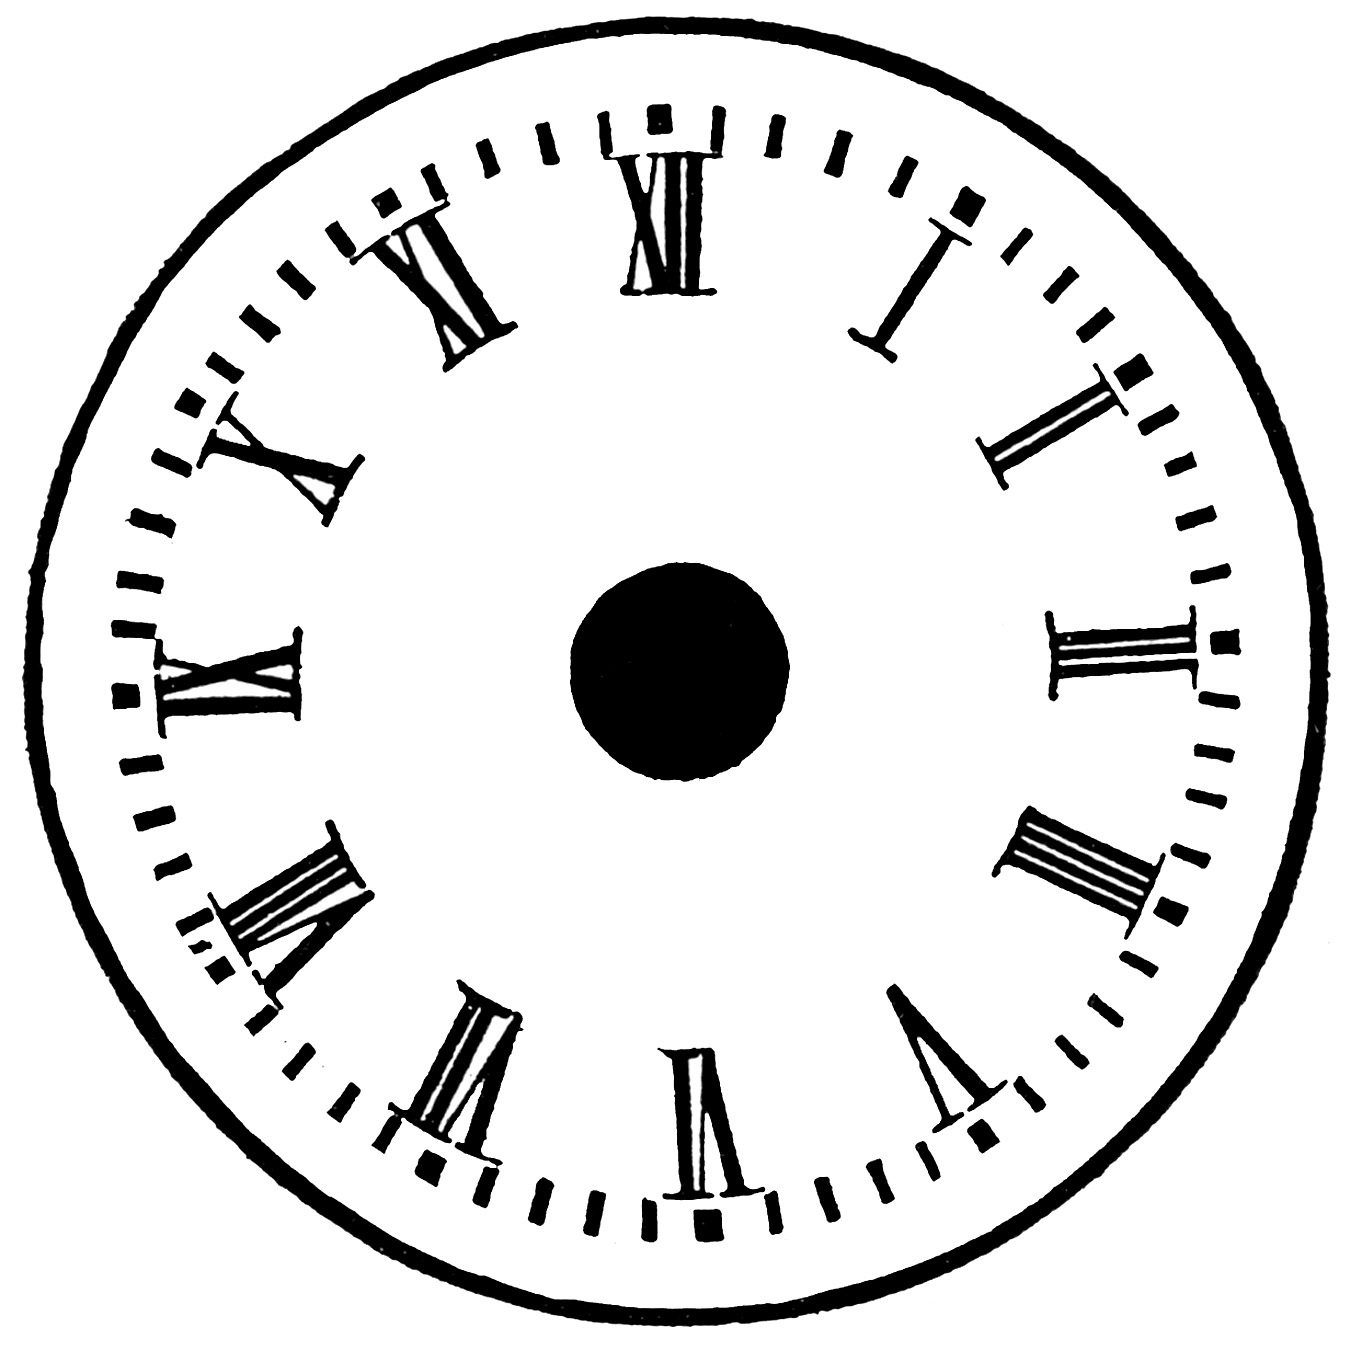 Printable Blank Clock Face.